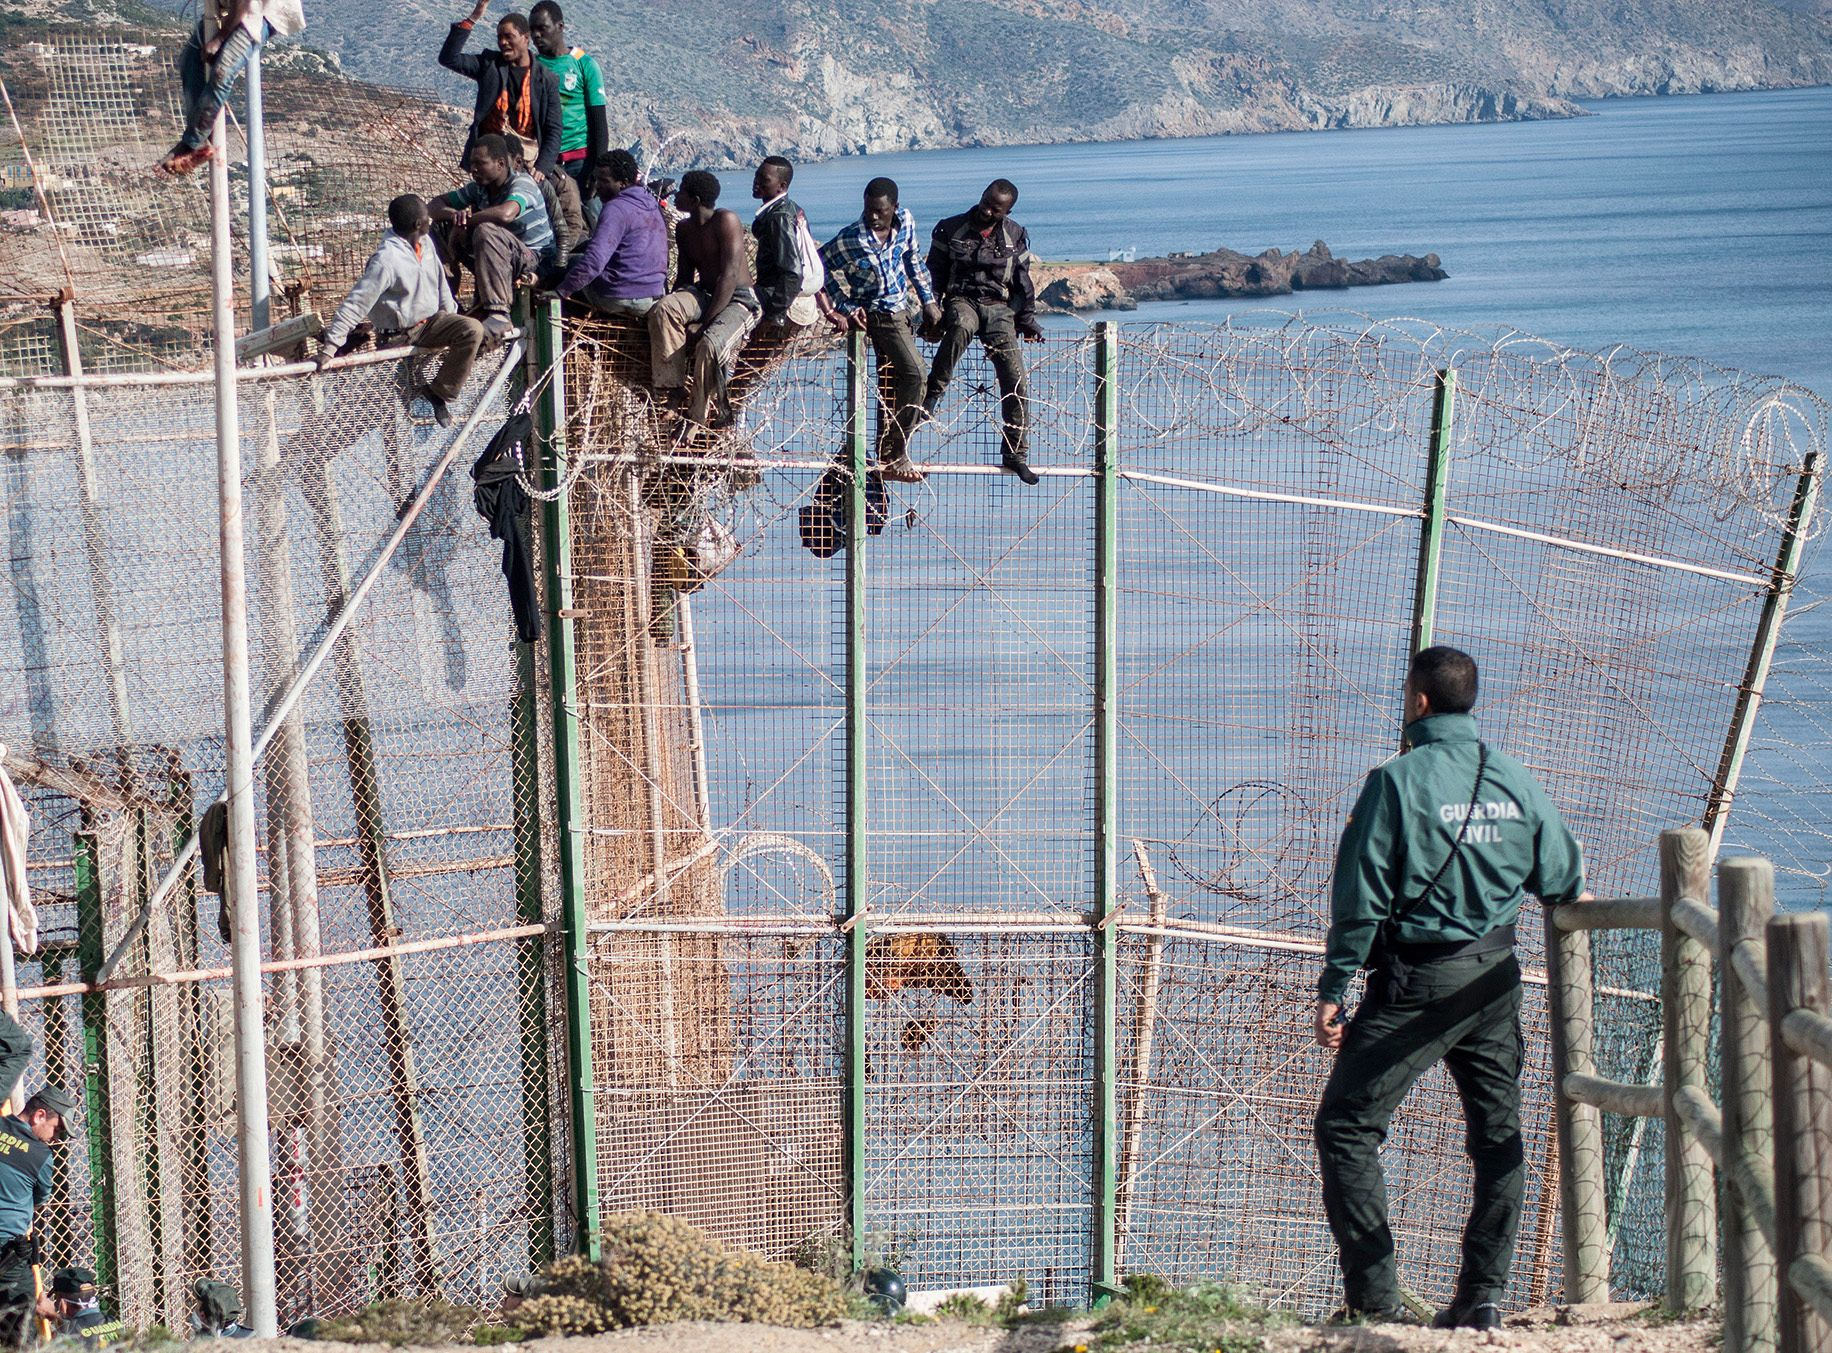 African migrants sit on top of a border fence between Morocco and Spain's north African enclave of Melilla during an attempt to cross into Spanish territory, 3rd April, 2014. Photo: NTB SCanpix.